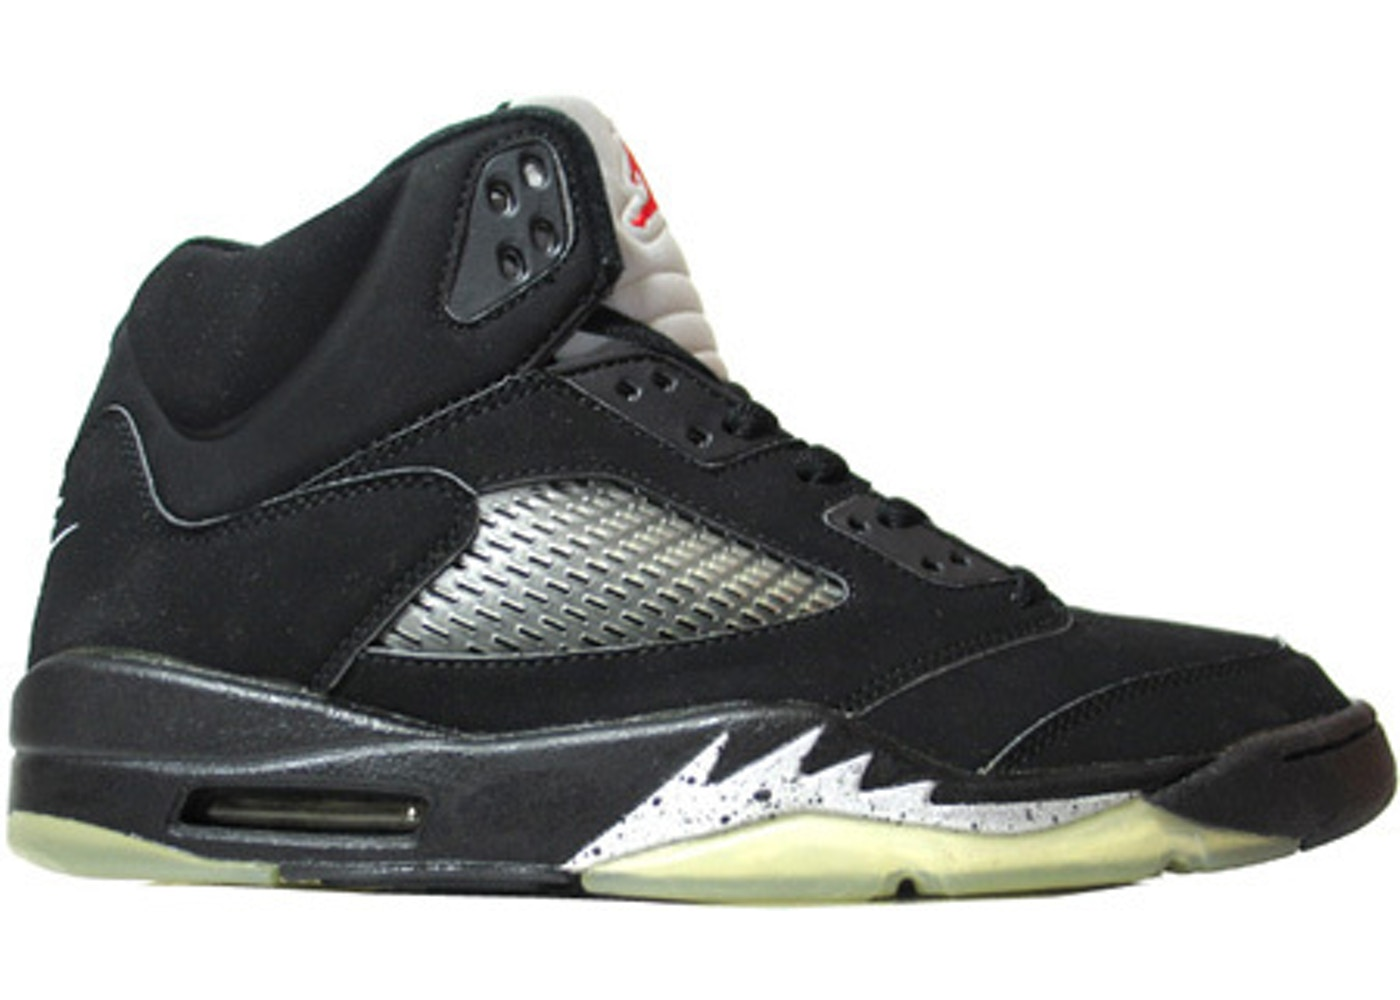 4d2b8b2fcdd2f0 Jordan 5 Retro Black Metallic (2000) - 136027-001